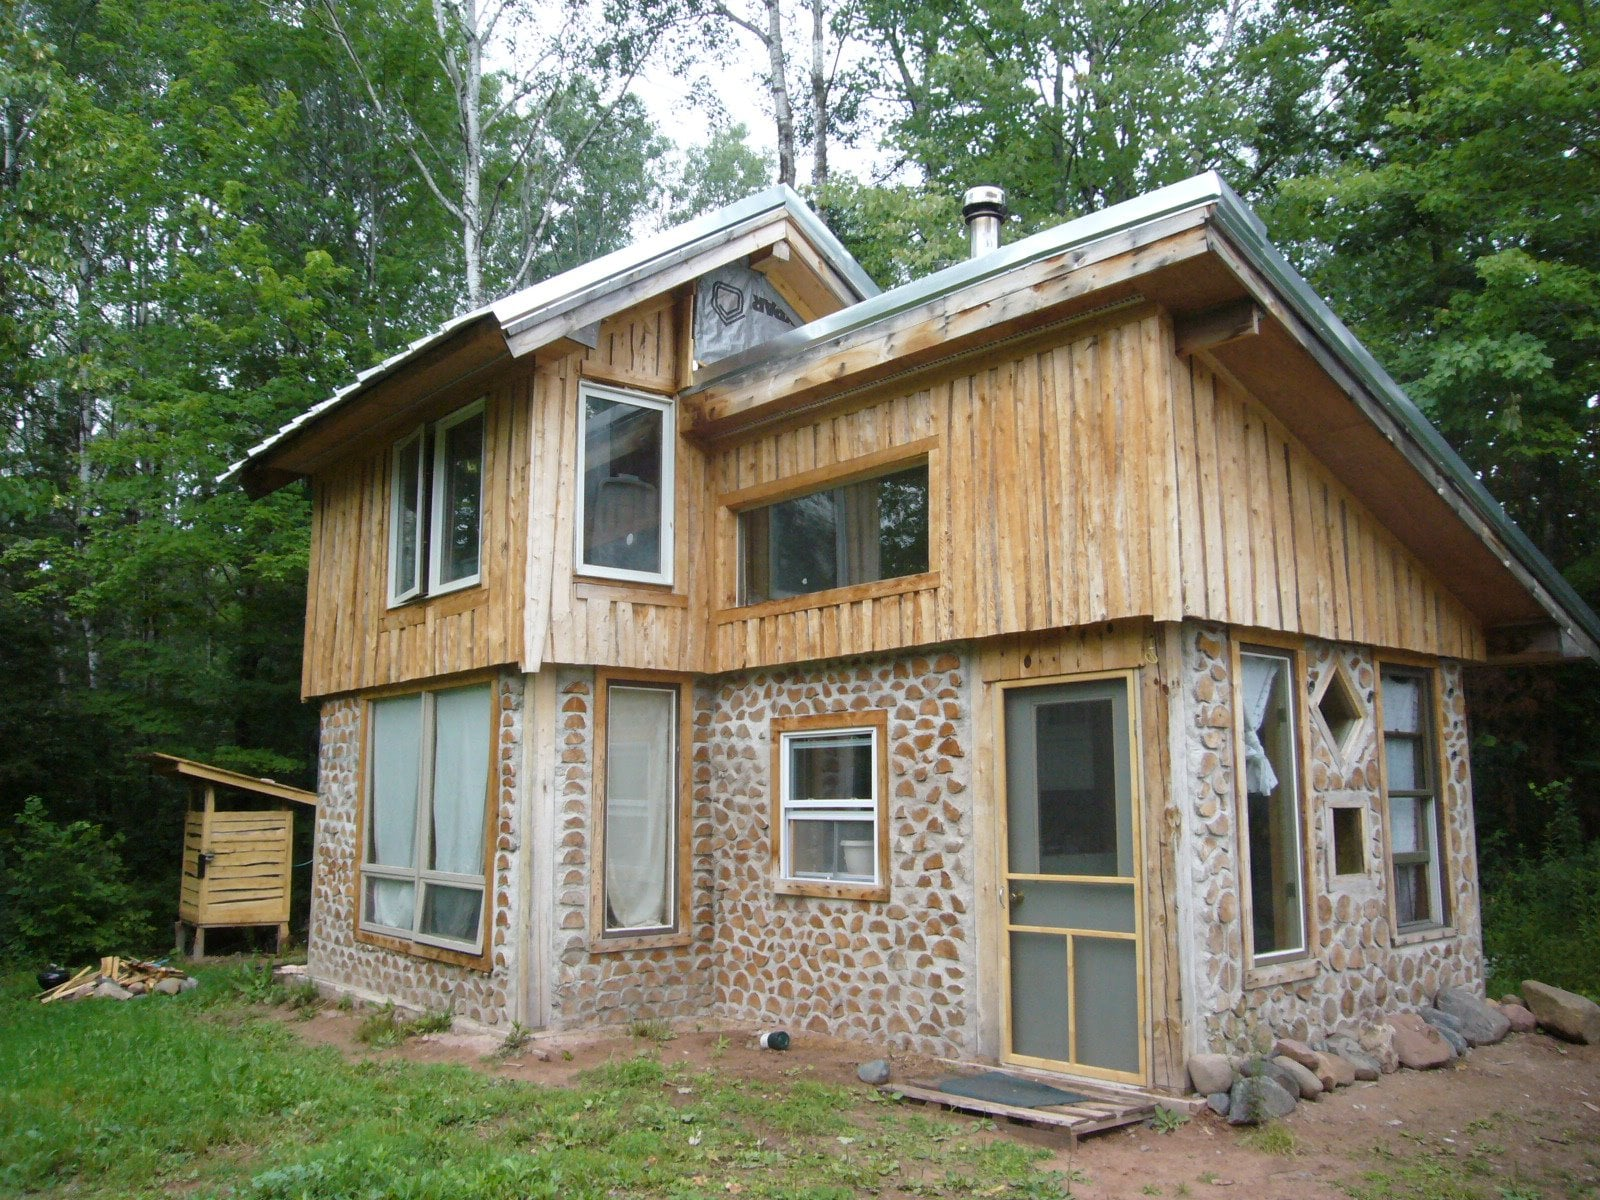 This tiny home was built several years ago using green building principles and DIY ingenuity. You can read about the process here and here.